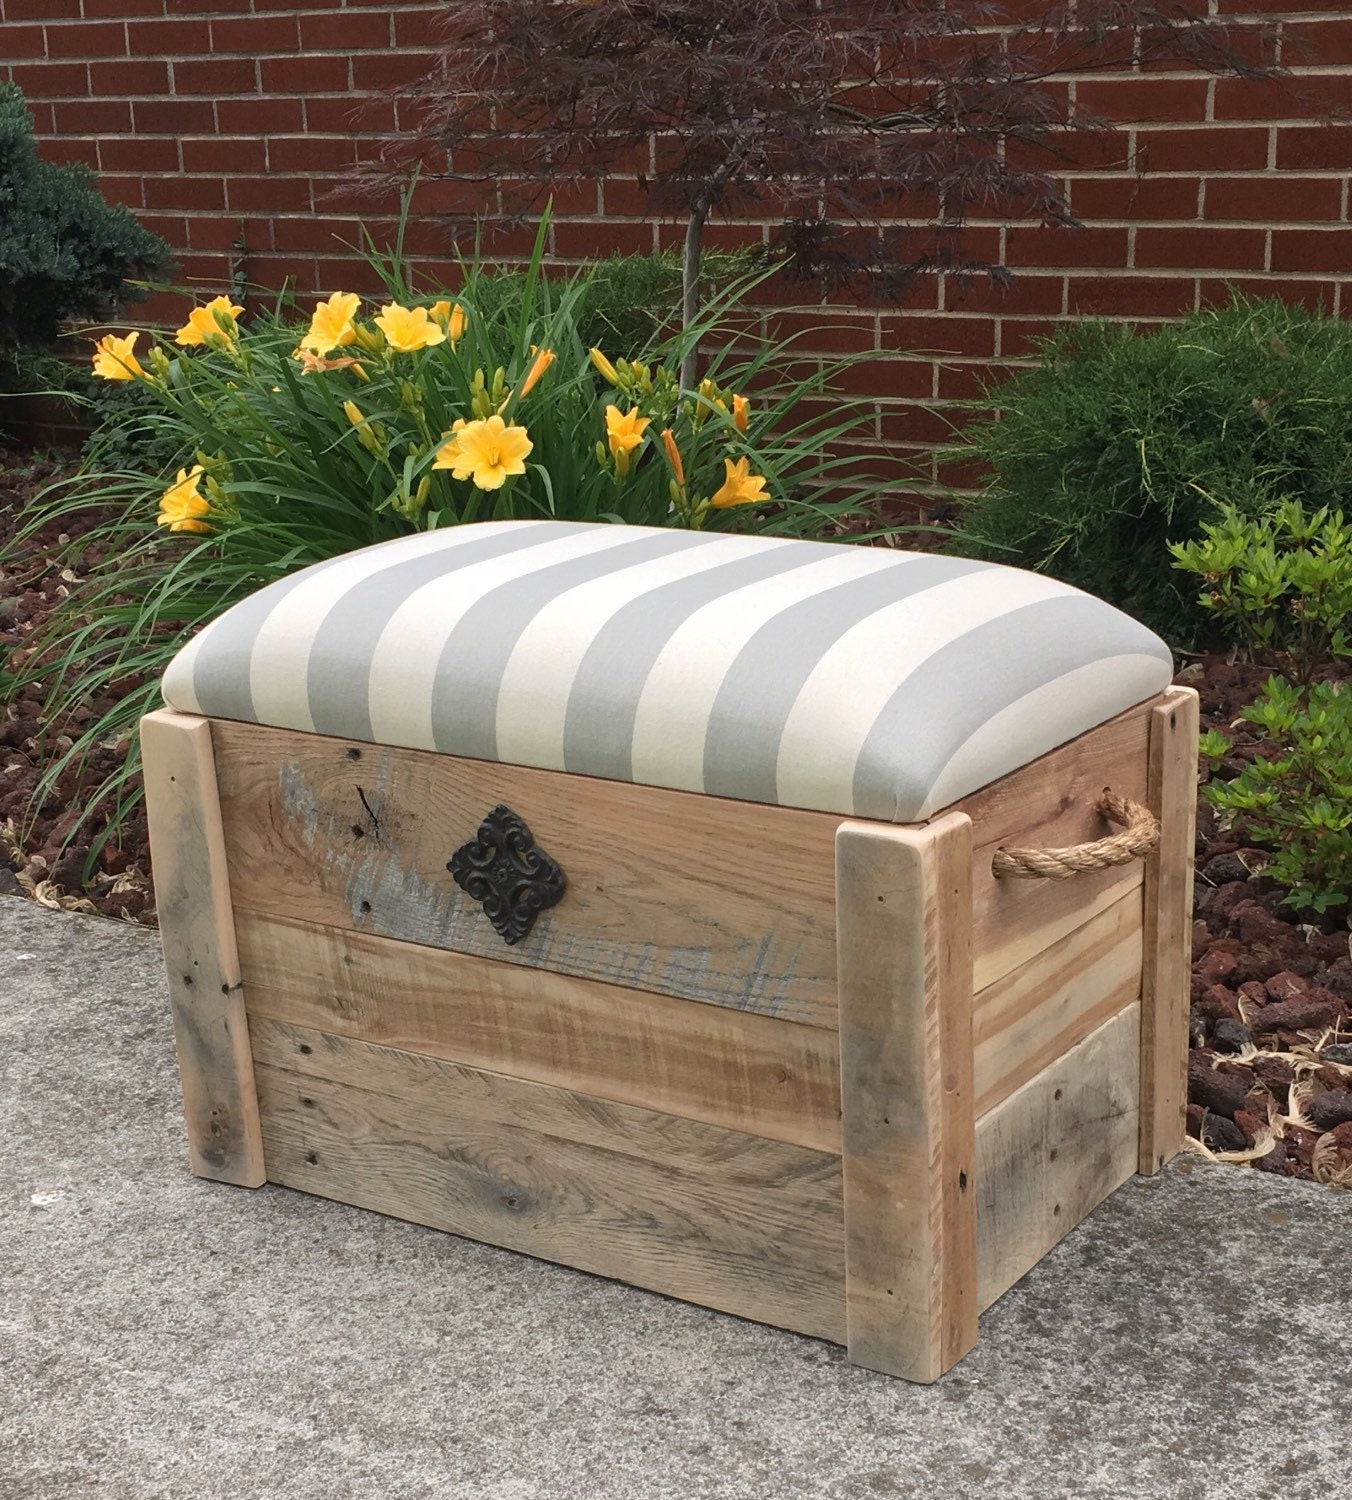 Storage Bench Shoe Rack Entryway Organizer Container Store: Storage Bench Shoe Bench Entryway Bench Toy Box Hope